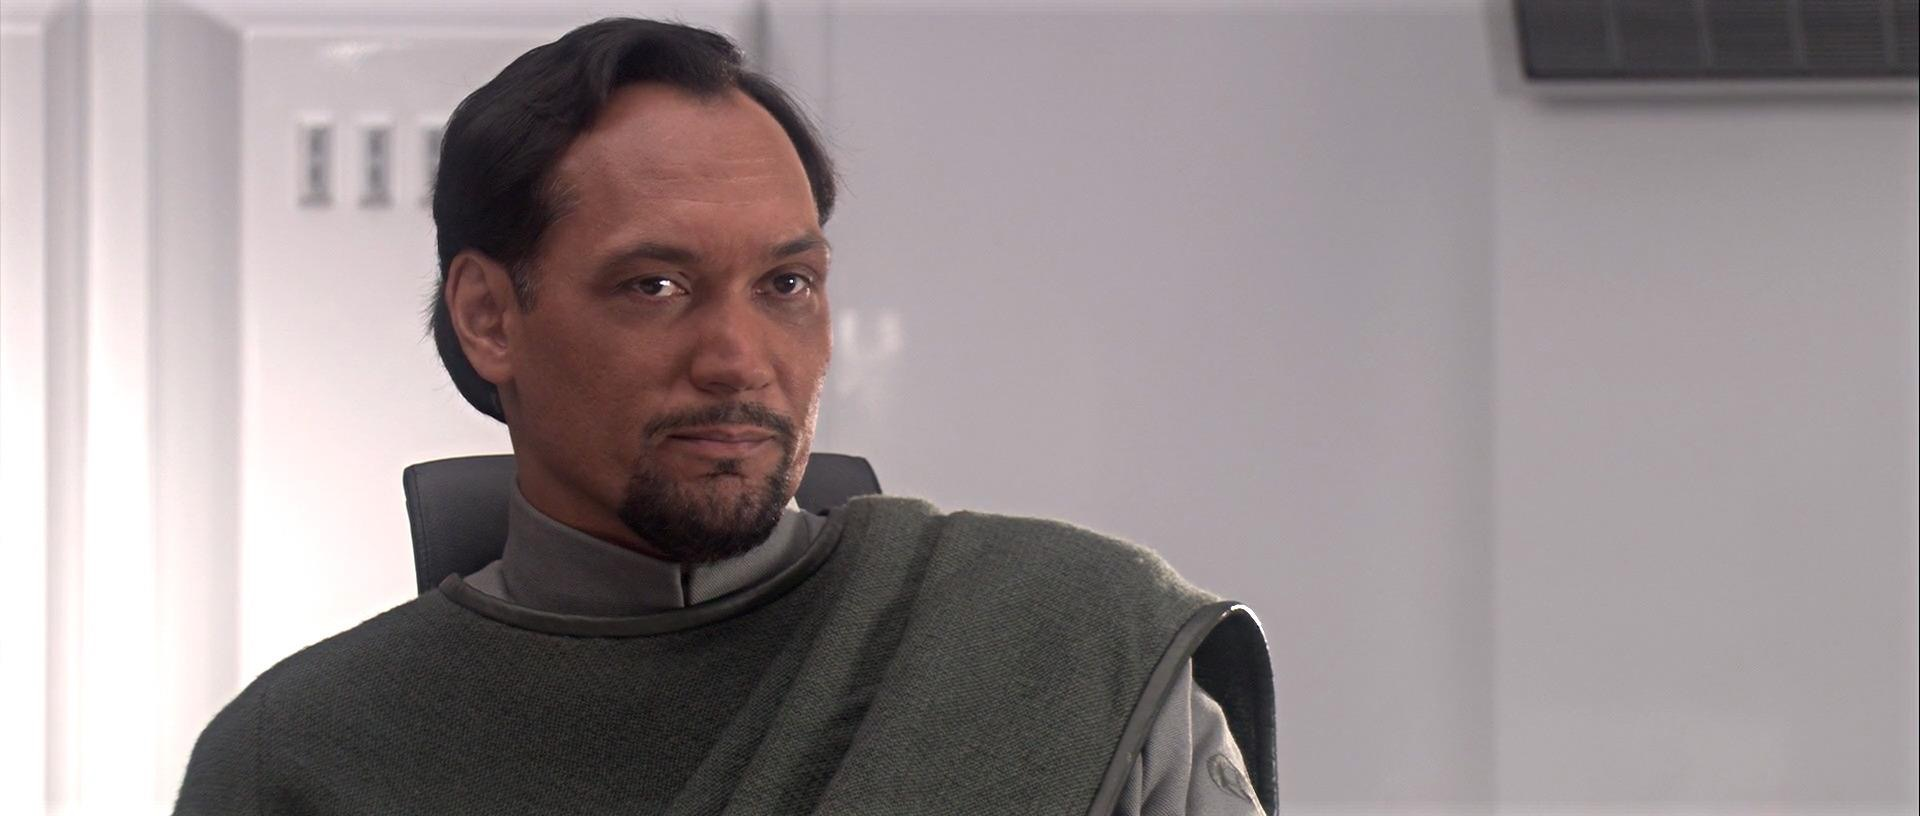 Jimmy Smits as Bail Organa in Star Wars: Episode III - Revenge of the Sith